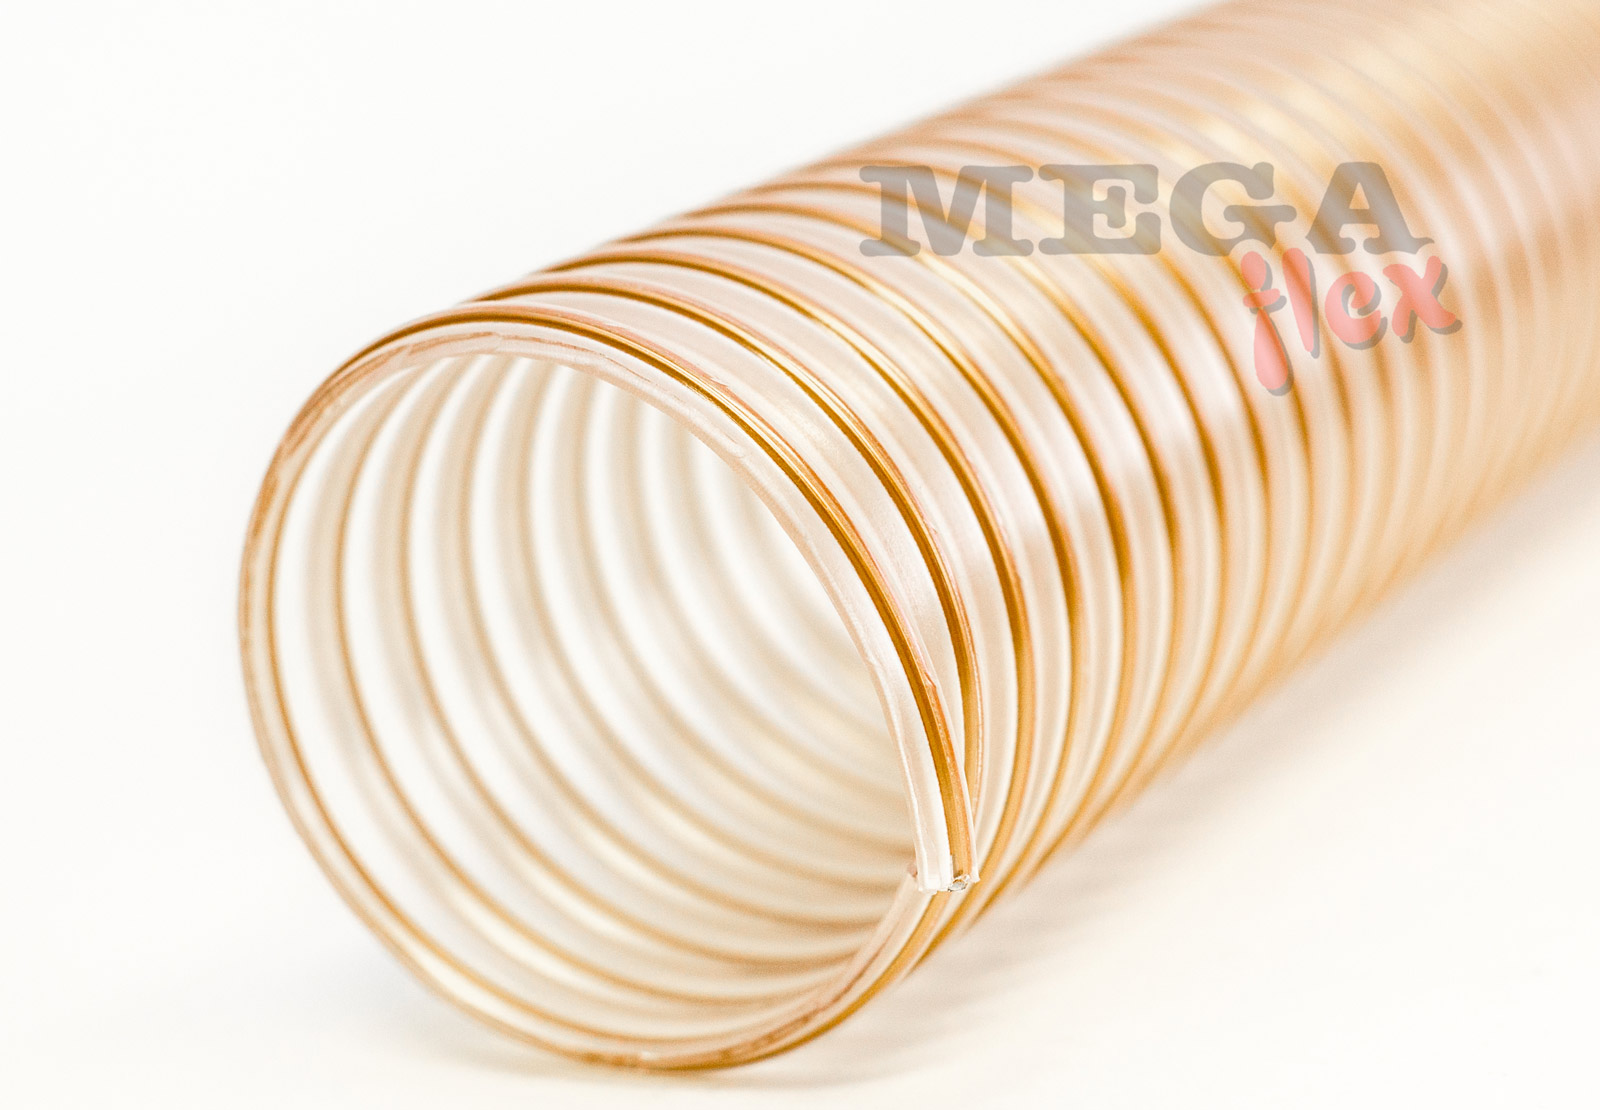 Vulcano PU HDS 15 - Clear Ester Polyurethane Ducting Reinforced with PU-coated Coppered Steel Wire Helix (Heavy Duty)